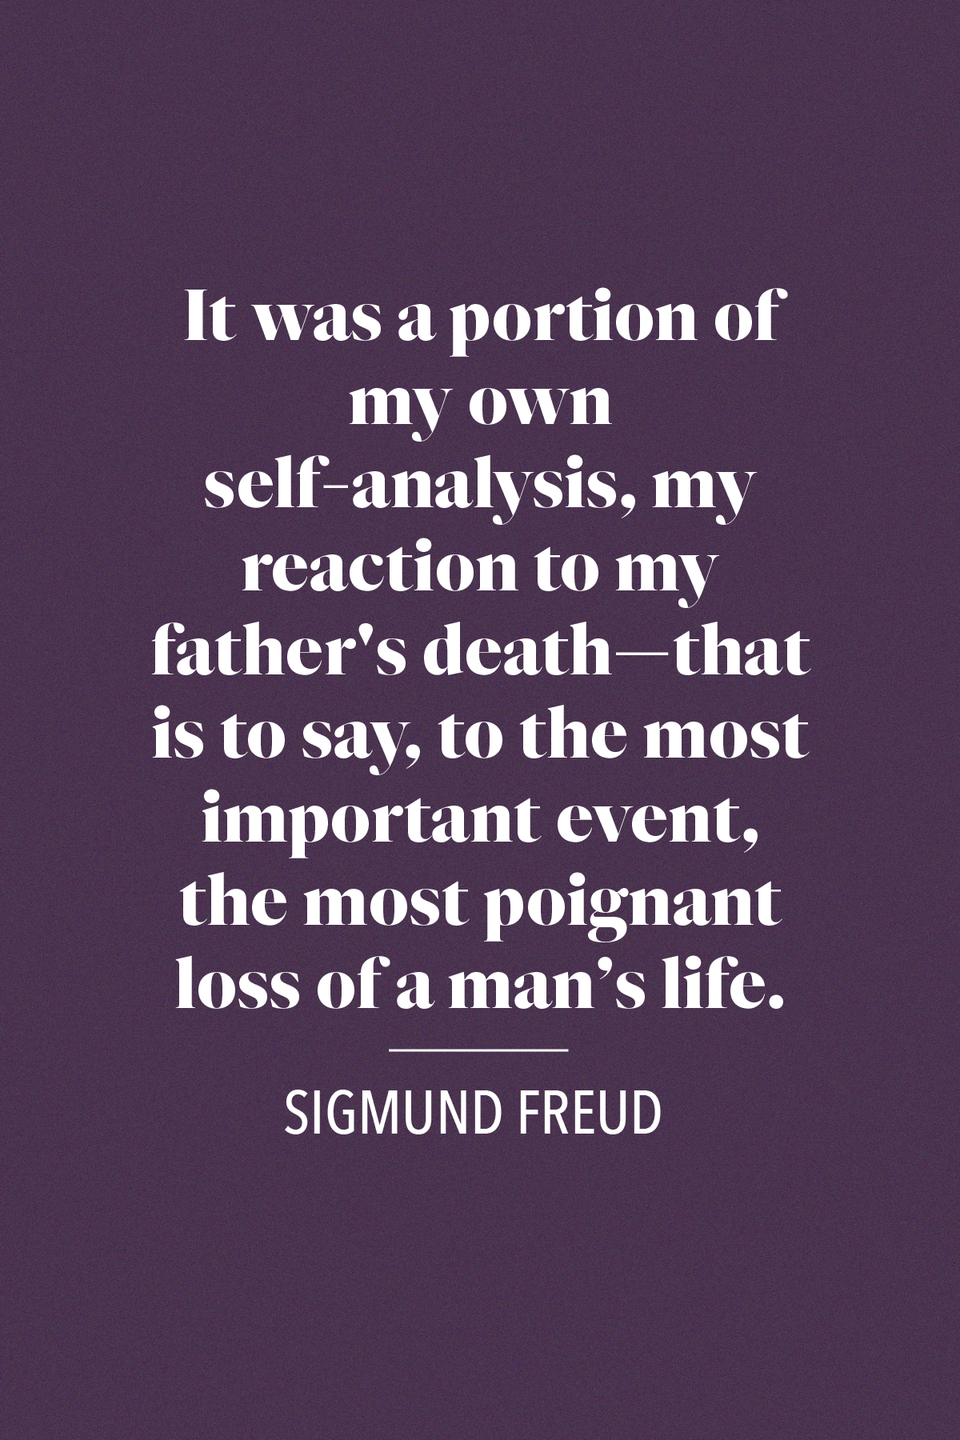 "<p>""It was a portion of my own self-analysis, my reaction to my father's death—that is to say, to the most important event, the most poignant loss of a man's life,"" Sigmund Freud, the founder of psychoanalysis, said in <a href=""https://www.amazon.com/dp/3903352055/ref=dp-kindle-redirect?_encoding=UTF8&btkr=1&tag=syn-yahoo-20&ascsubtag=%5Bartid%7C10072.g.32909234%5Bsrc%7Cyahoo-us"" rel=""nofollow noopener"" target=""_blank"" data-ylk=""slk:his book The Interpretation of Dreams"" class=""link rapid-noclick-resp"">his book <em>The Interpretation of Dreams</em></a><em>.</em></p>"